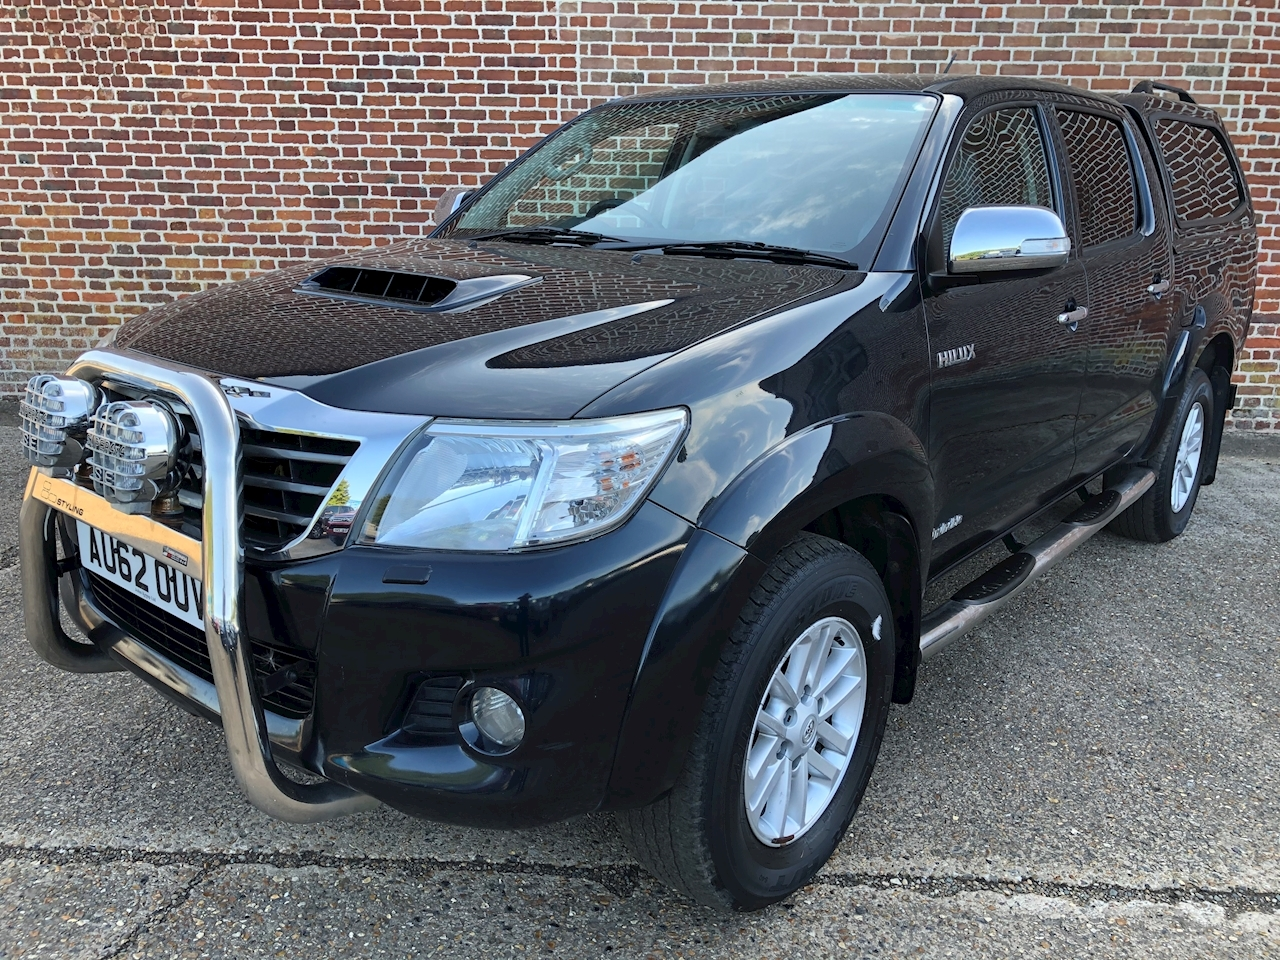 Toyota Hilux Invincible 4X4 D-4D Dcb 3.0 4dr Light 4X4 Utility Manual Diesel